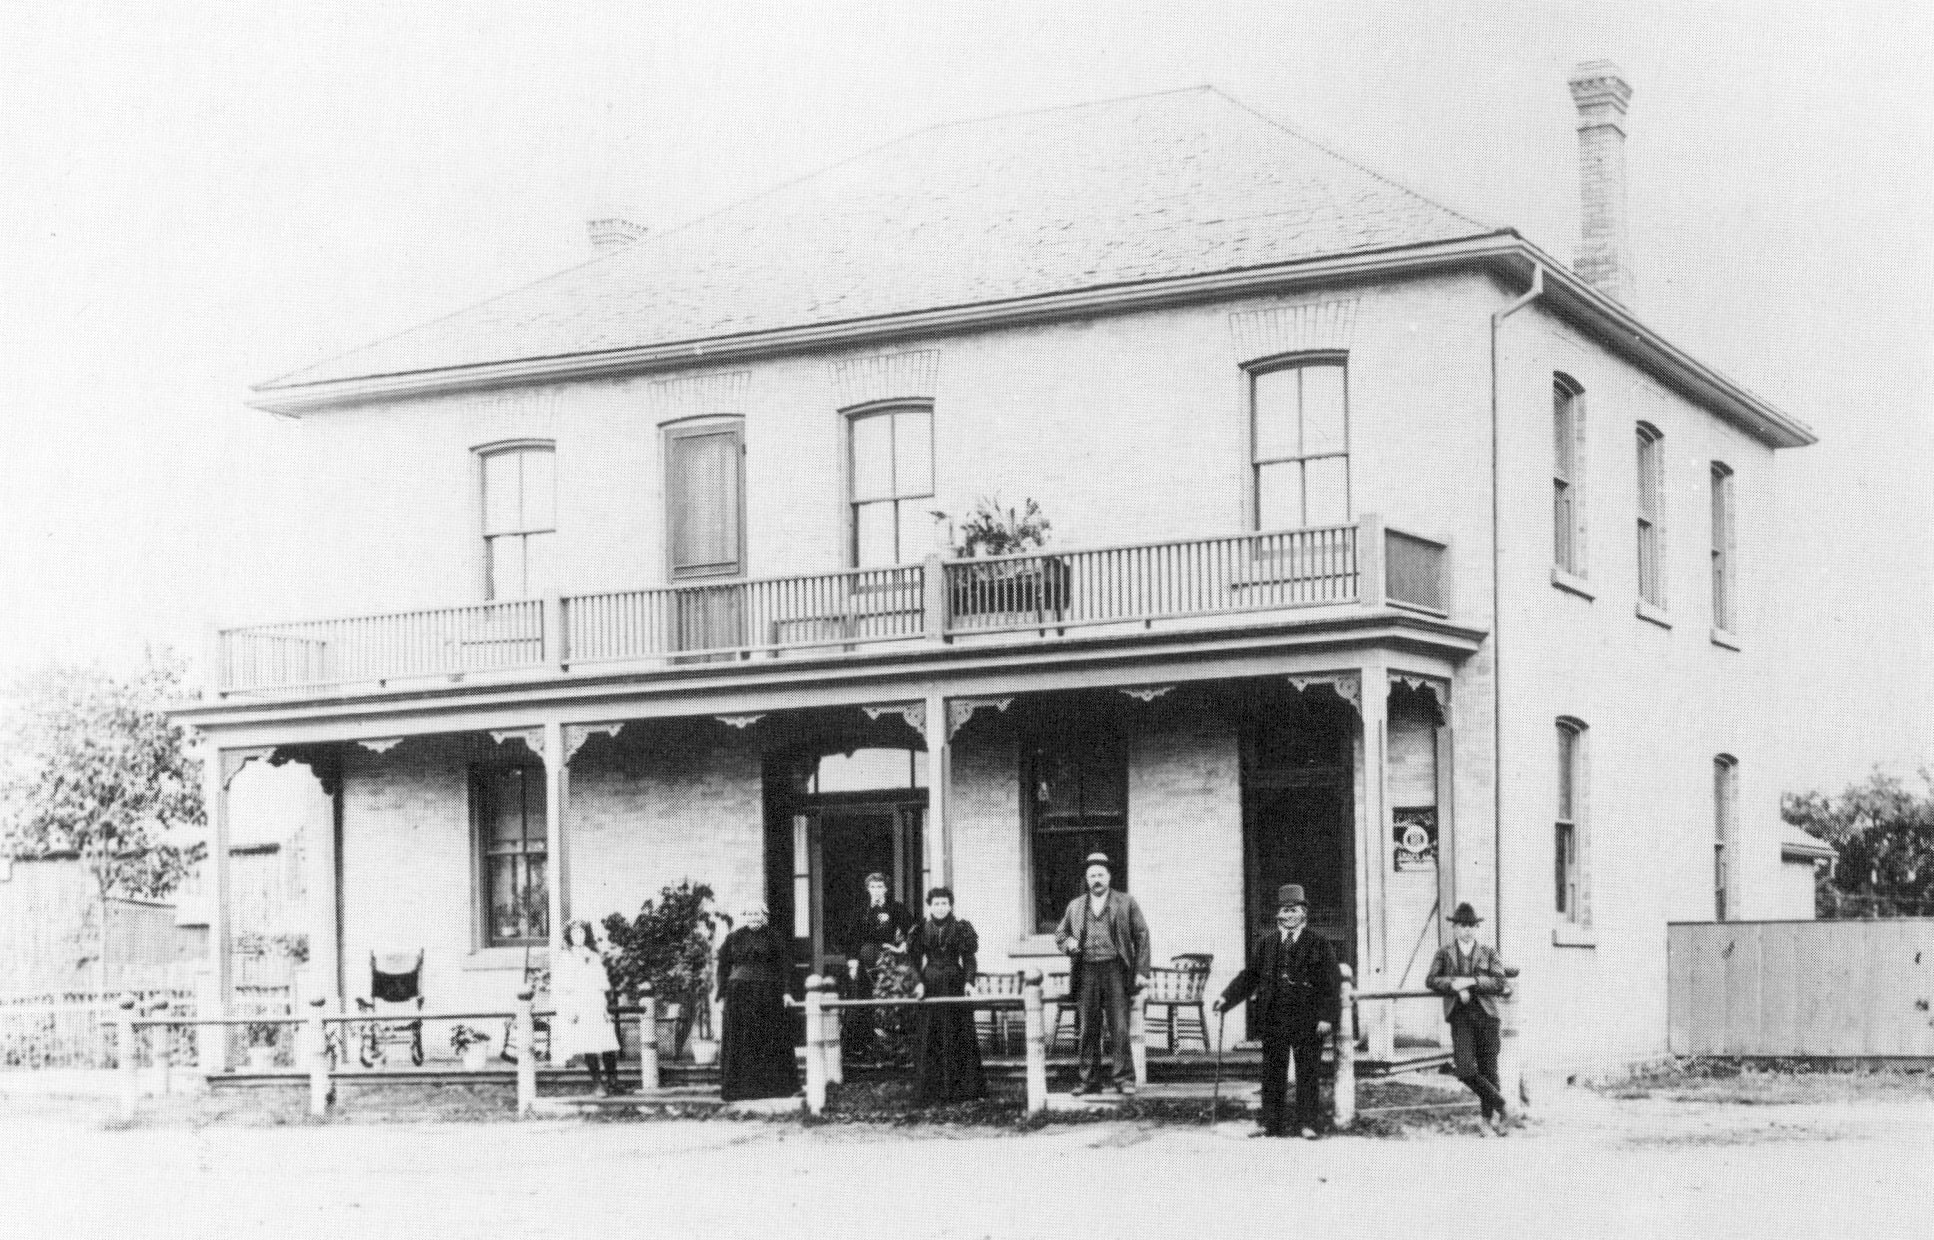 A black and white photo of a two-storey house with several people standing out front.